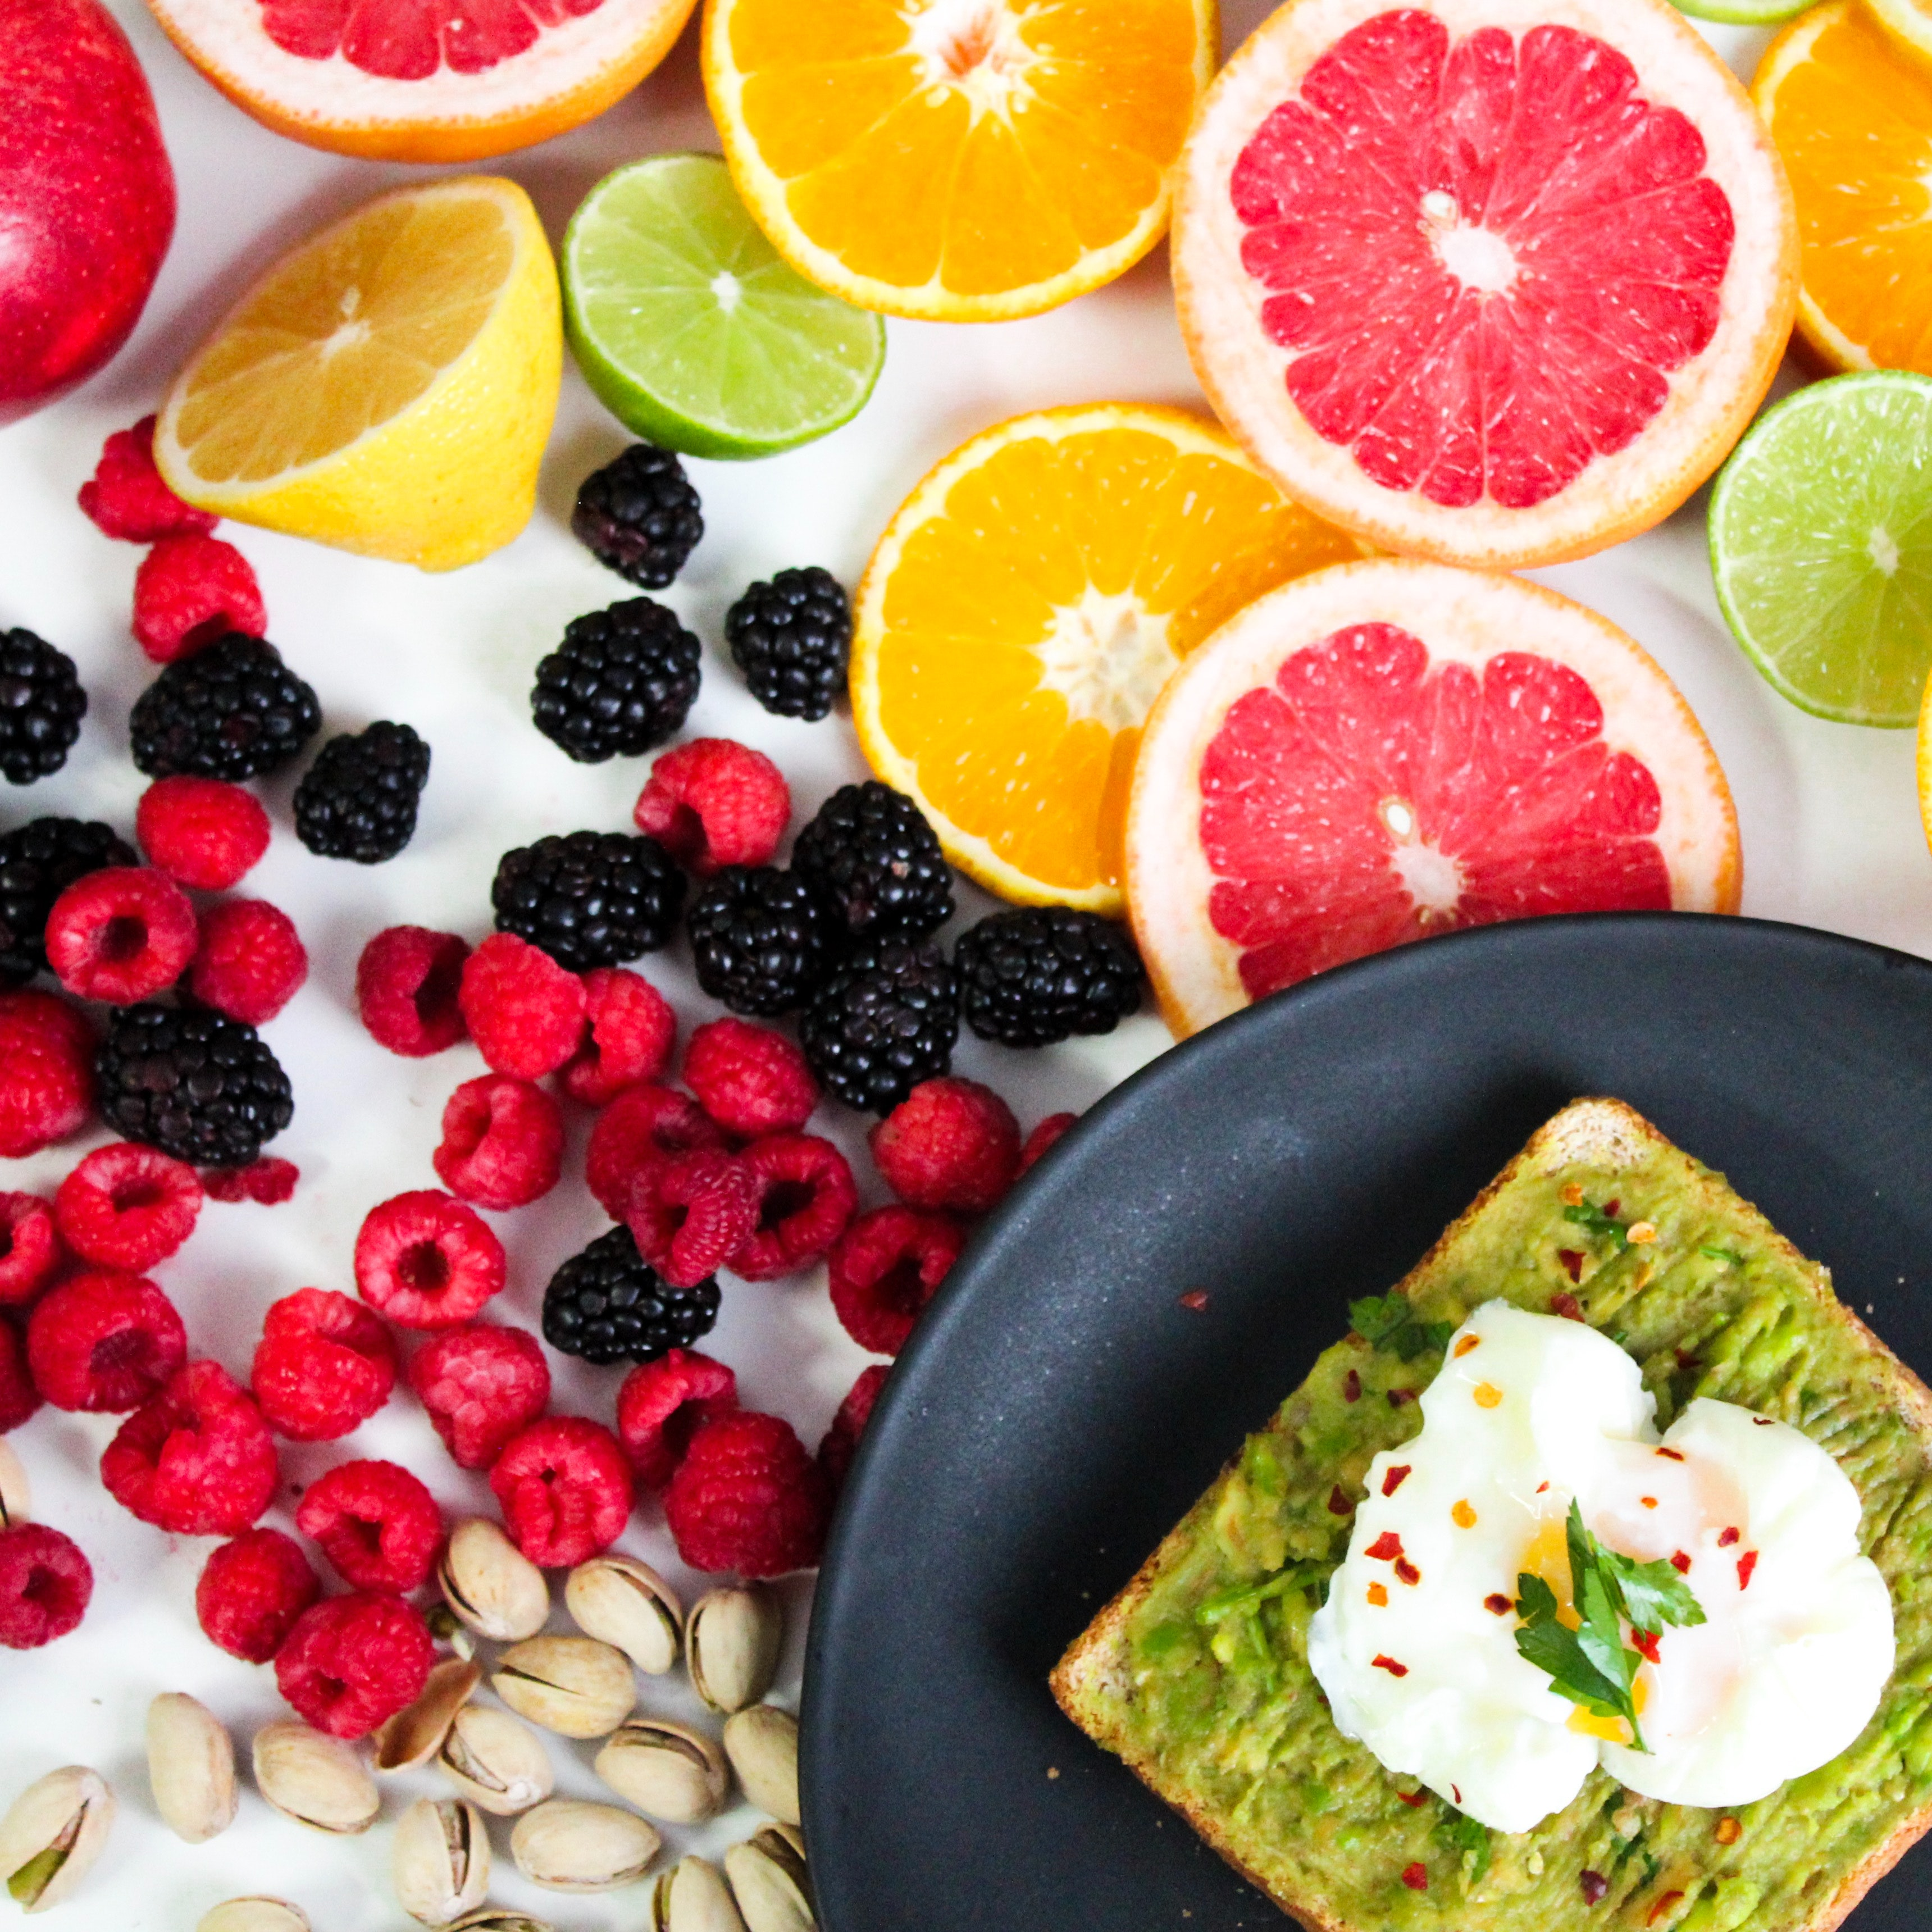 Superfoods That Won't Break The Budget